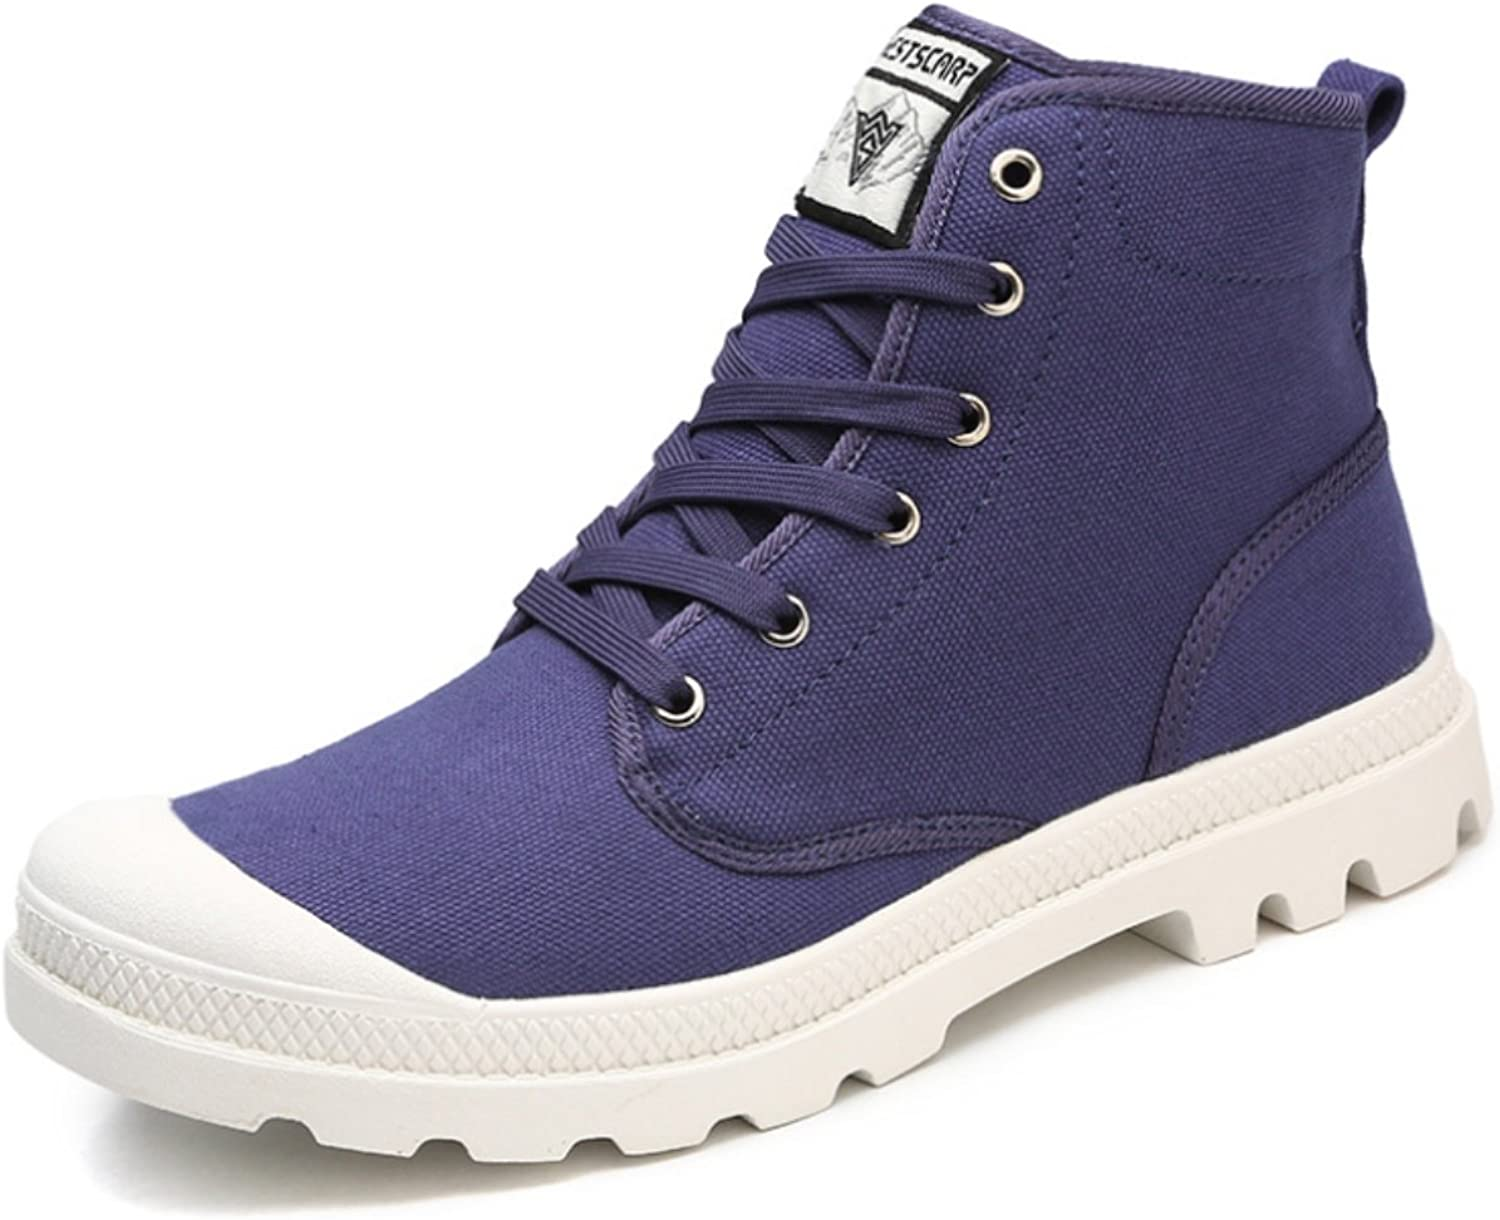 DADAWEN Unisex Hi-Top Sneakers Lace-up Canvas Trainers